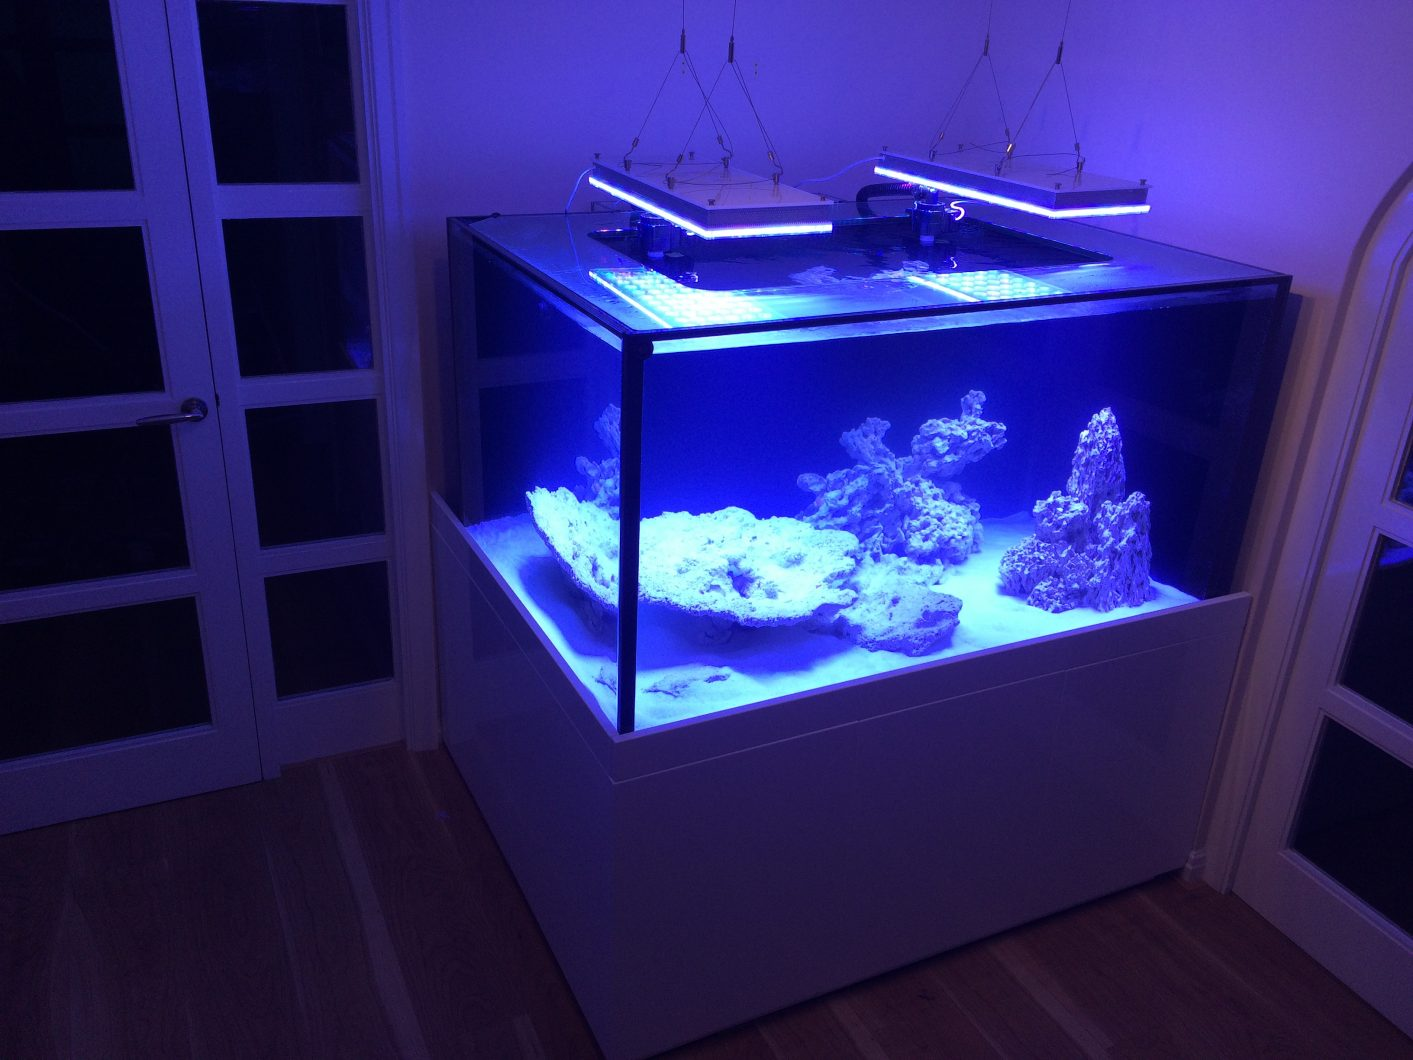 start-2-Orphek-Atlantik-LED-Reef-akvarie-ljus